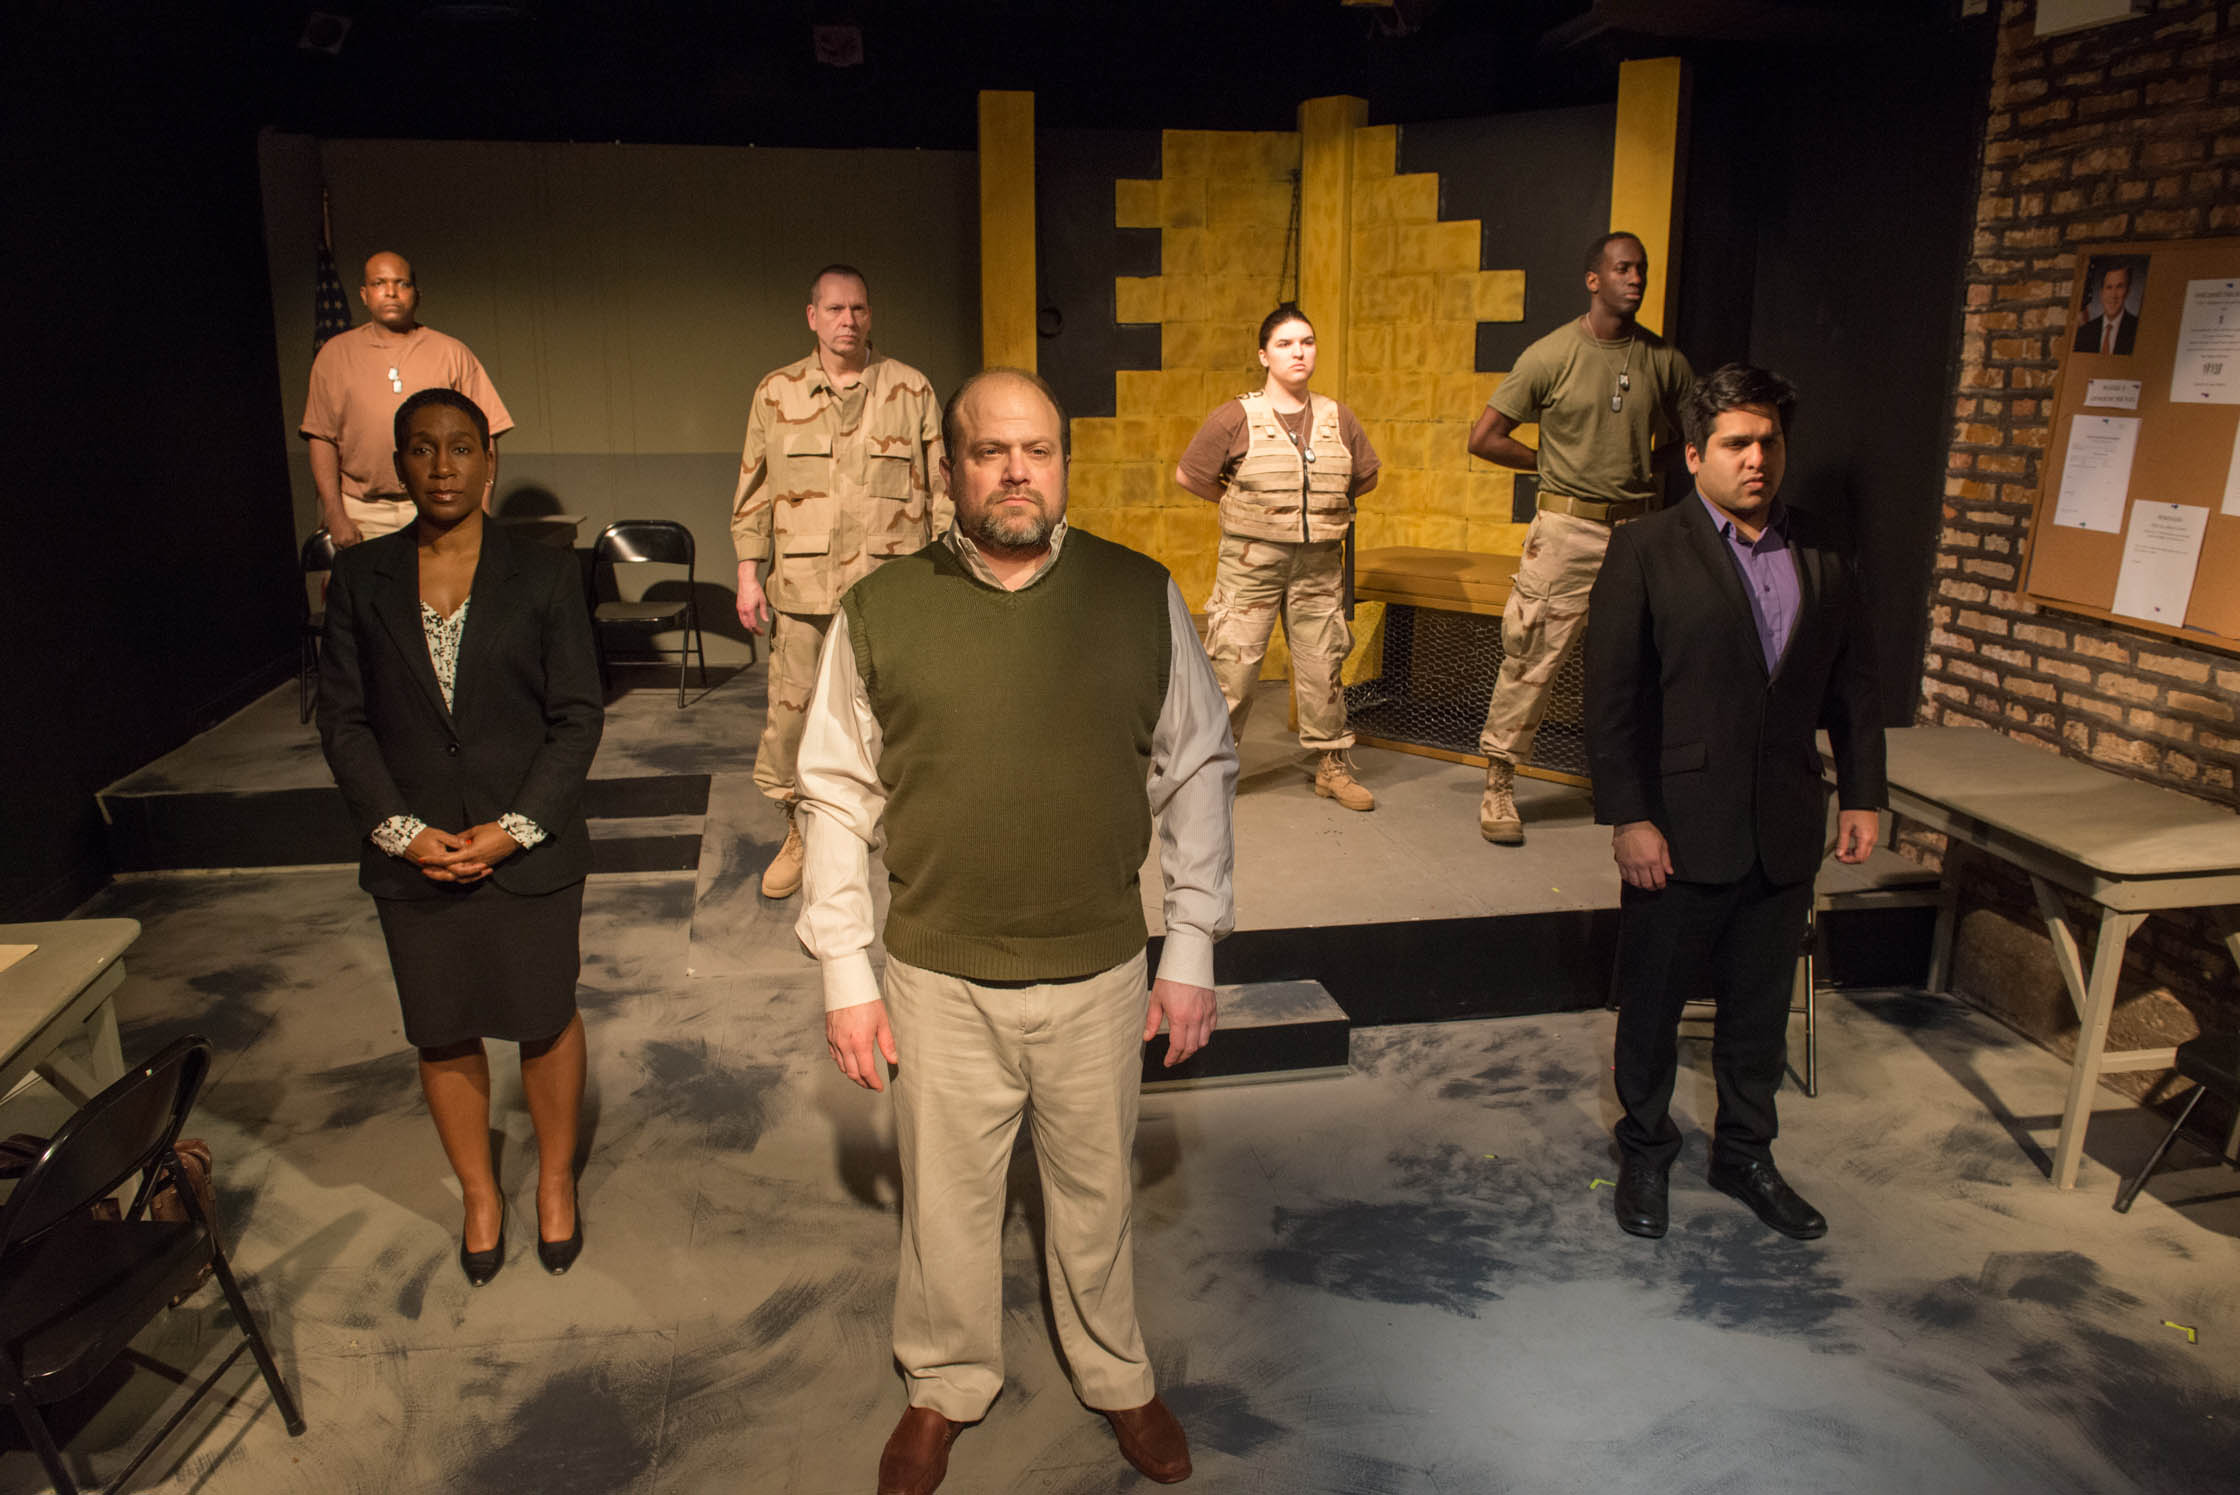 """Front row (L to R) Shariba Rivers as Dr. O'Brien, Steve Silver as Ayyub, Sunny Anam as Abdul Walli; Back row (L to R) Robert Hardaway as Lt. Milo, Tony St. Clair as Col. Lewis, Hannah Tarr as Sgt. Lindsey and David Goodloe as Pvt. Michaels in """"Skin for Skin"""" from The Agency Theatre Collective. Photo by Bill Richert."""